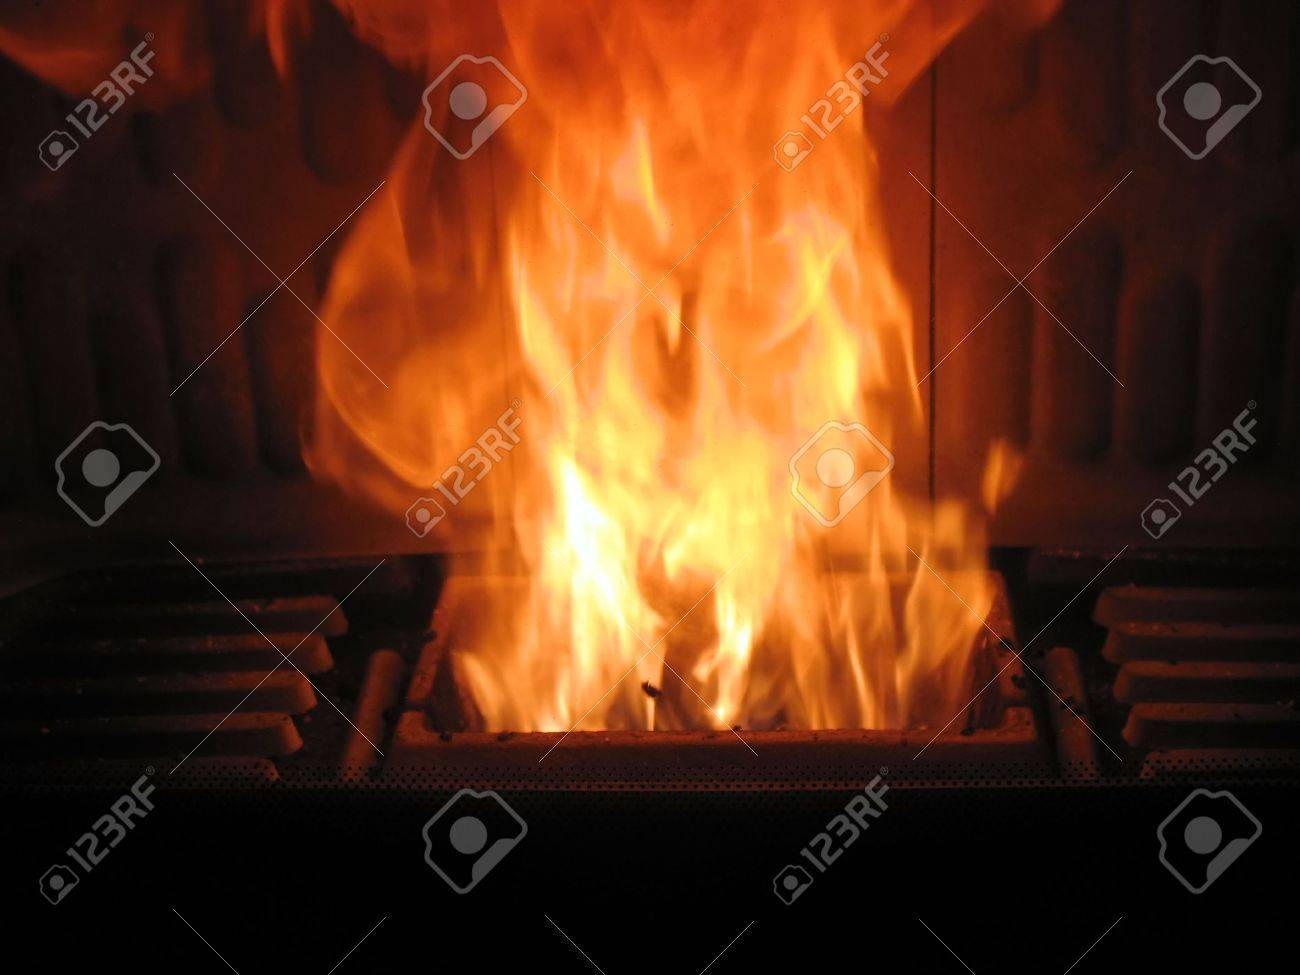 fireplace is burning wood pellets stock photo picture and royalty